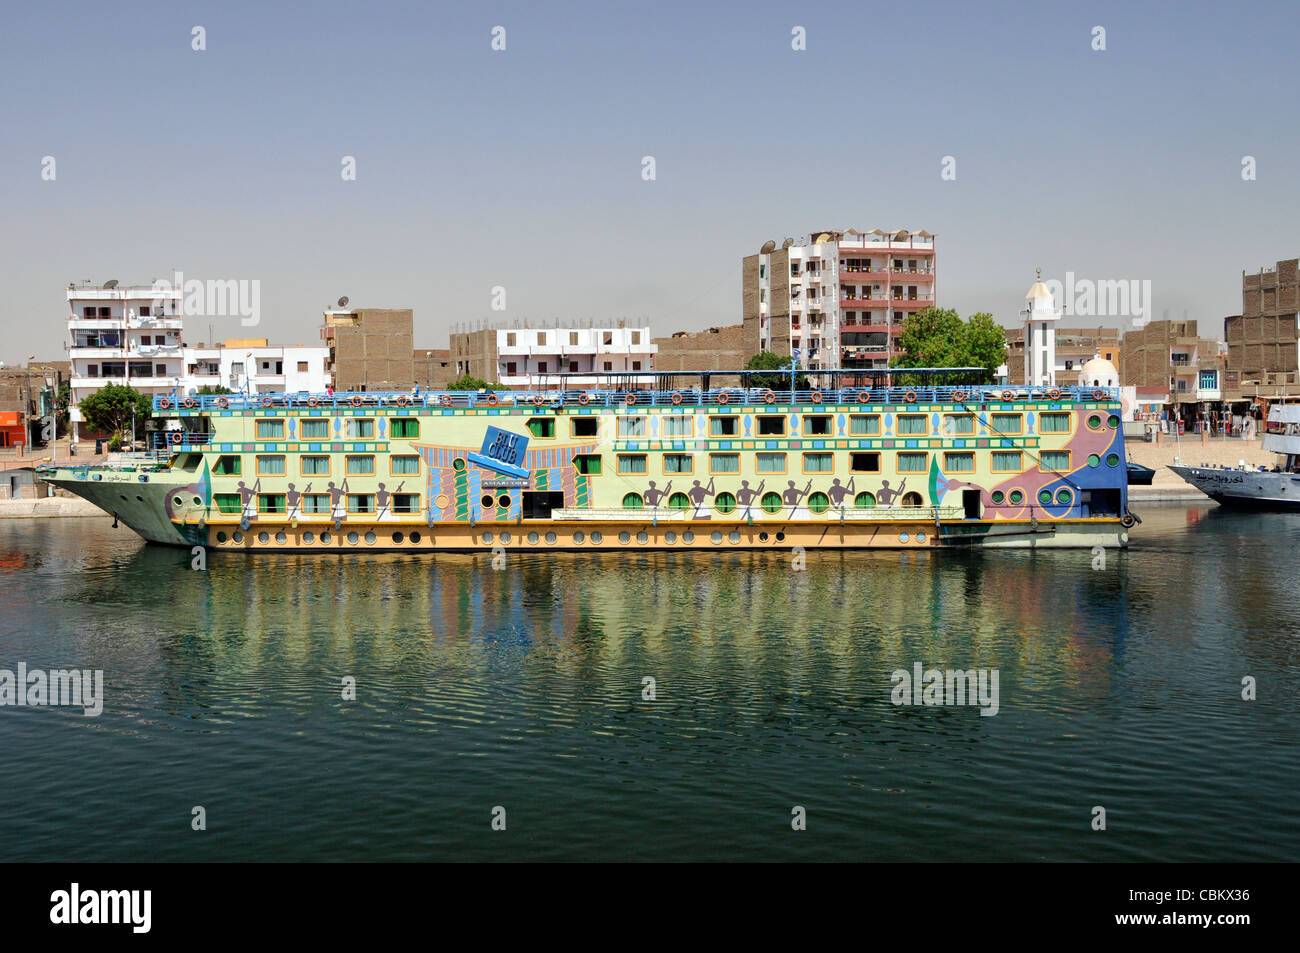 Blu Club is one of the Nile cruise ships - Stock Image